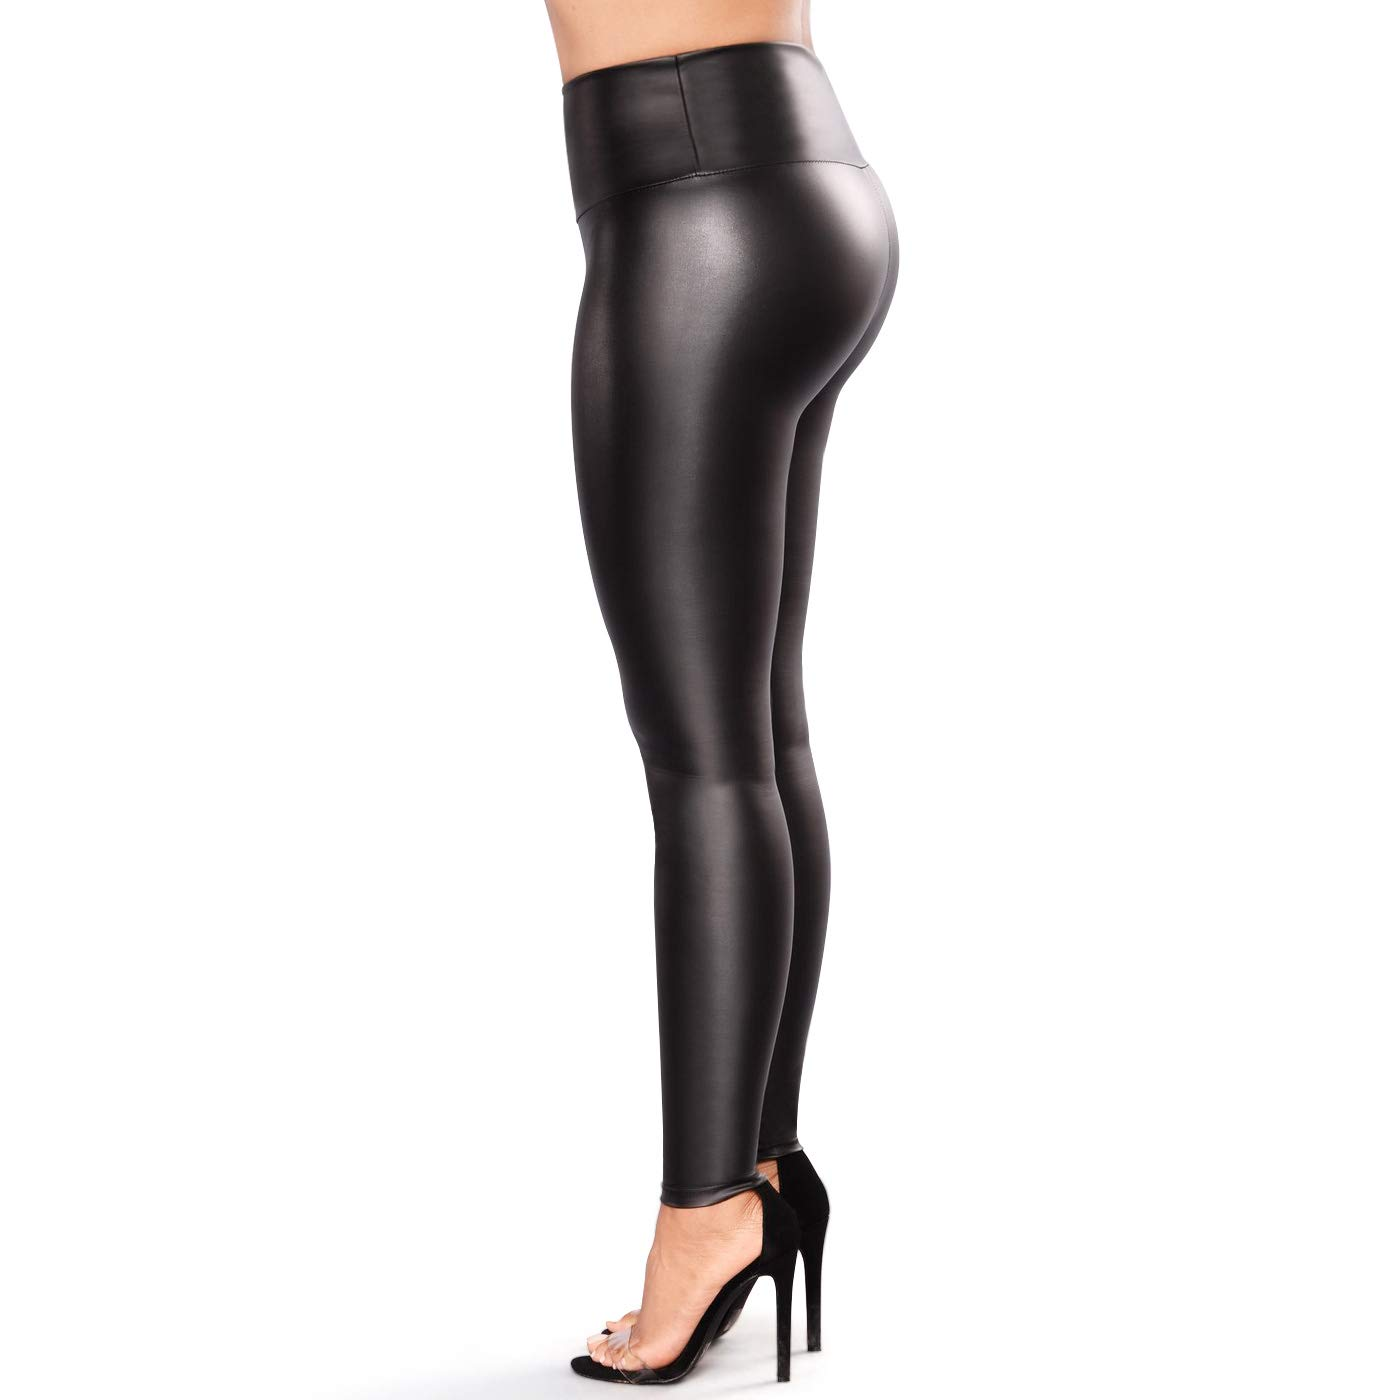 Retro Plus Size Womens Leather Leggings Stretchable High Waisted Leather Pants (Black, XXL-US 20-22 /Waist 38''-42'' Hips47-51)